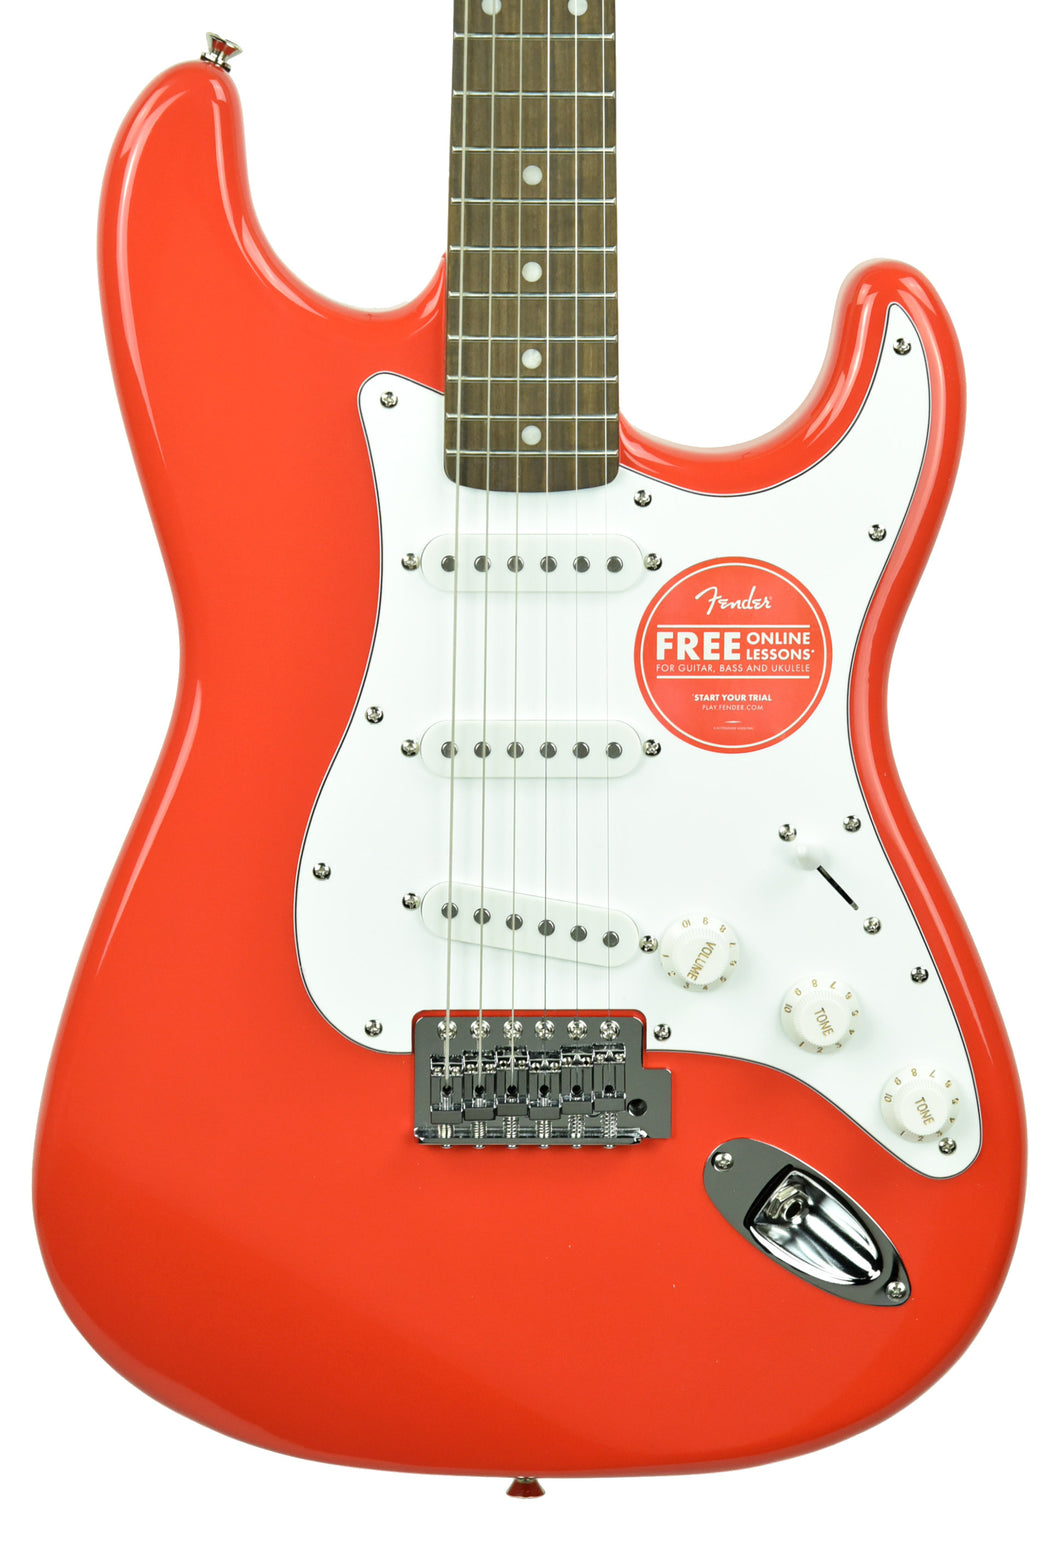 Squier Affinity Stratocaster Electric Guitar in Race Red CY200300965